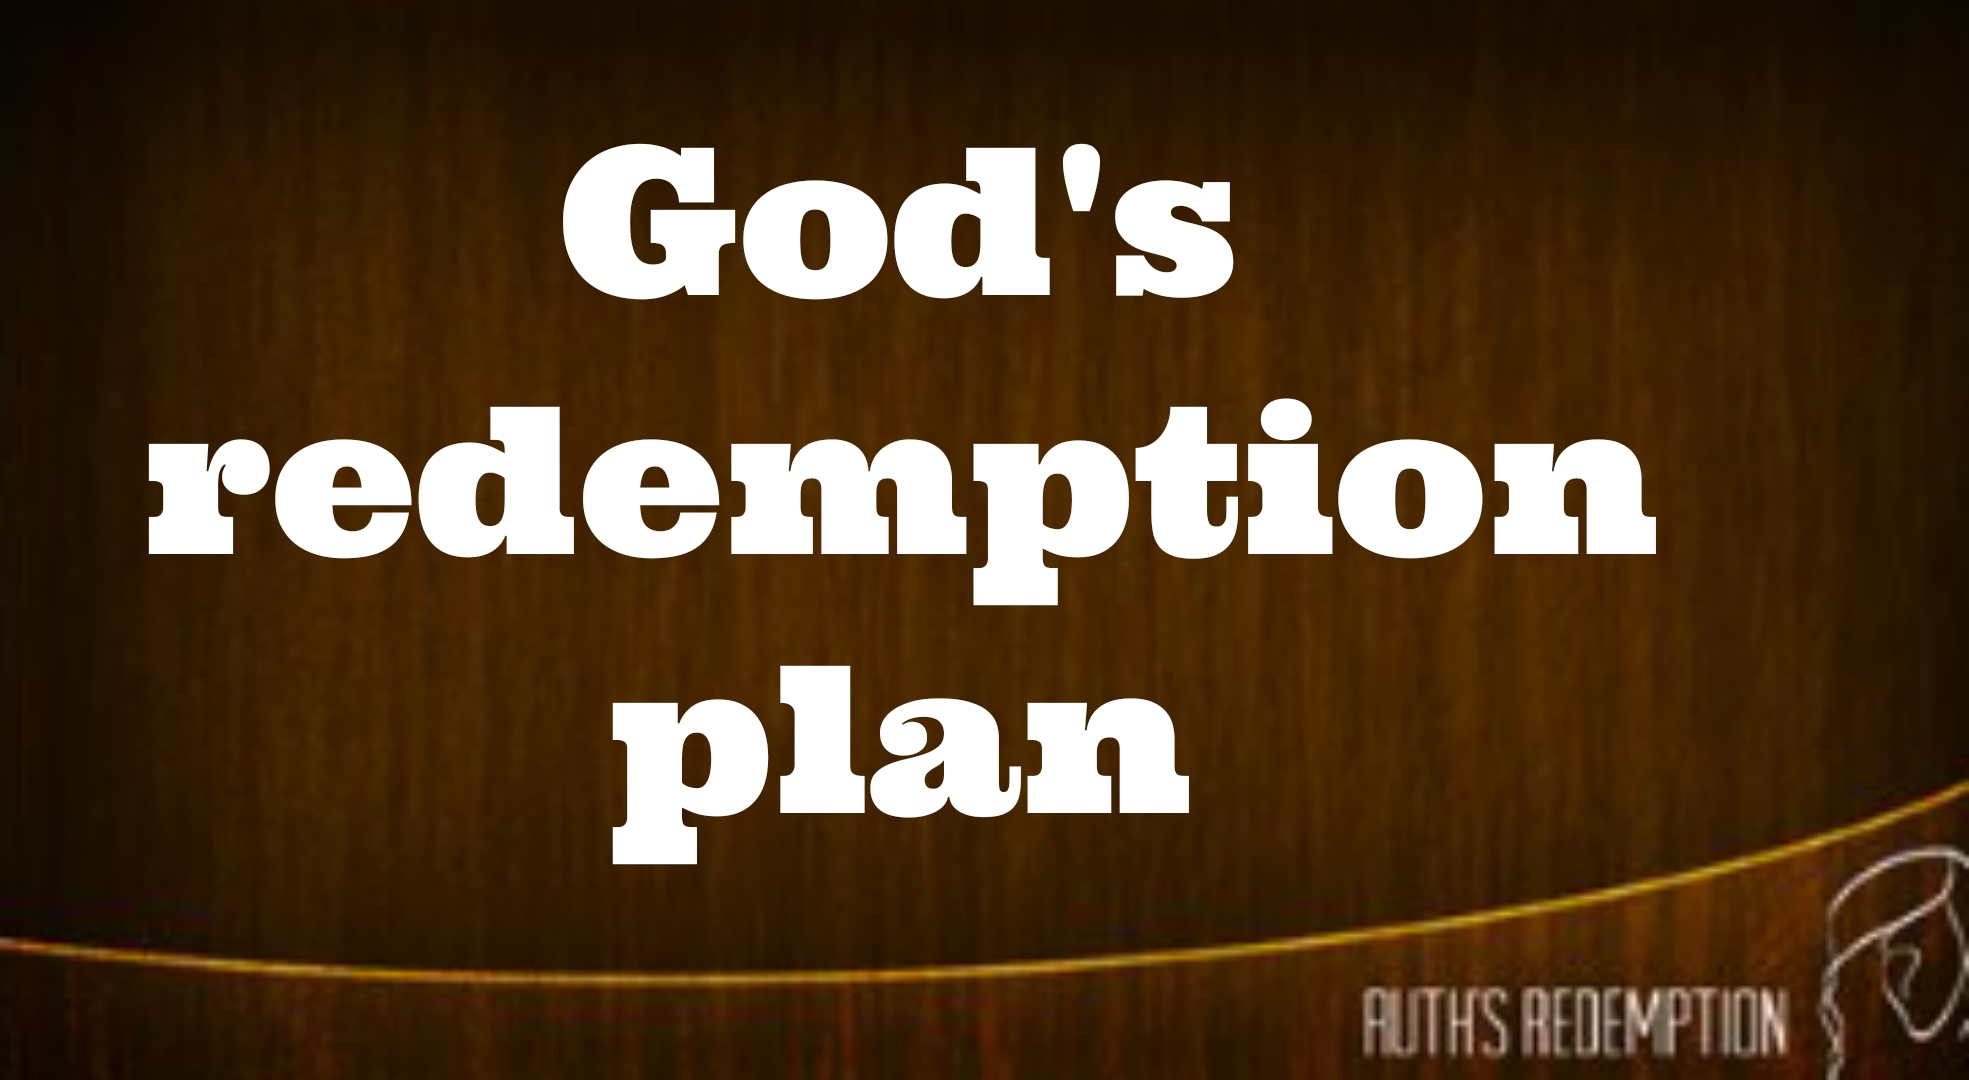 God's redemption plan (2)